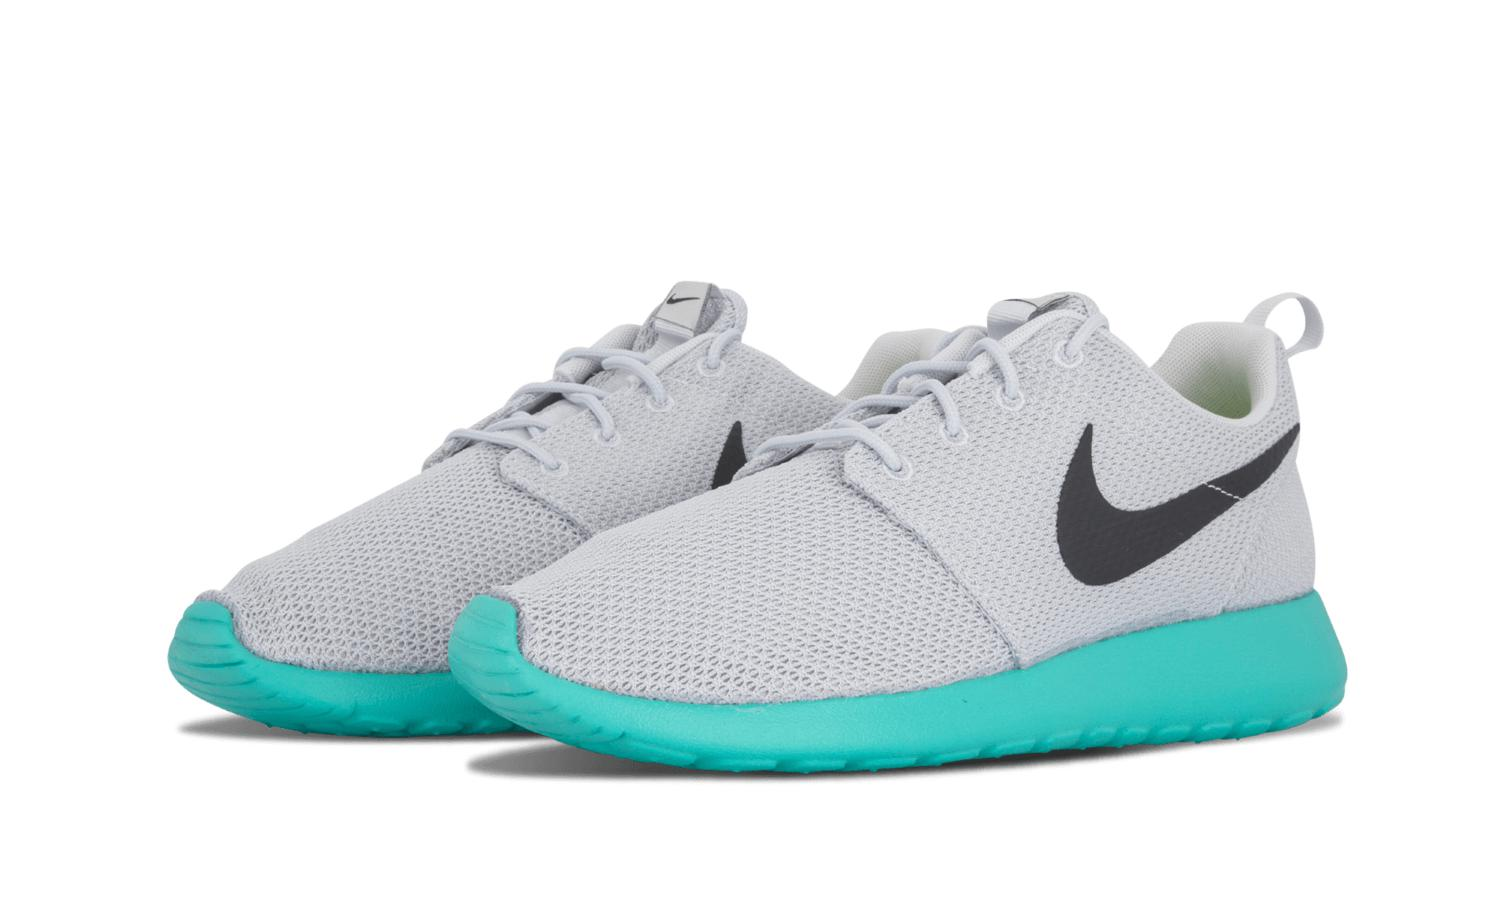 wholesale dealer 76897 17bf2 ... clearance lyst nike rosherun pure platinum anthracite calypso running  shoe c0c79 0a00c